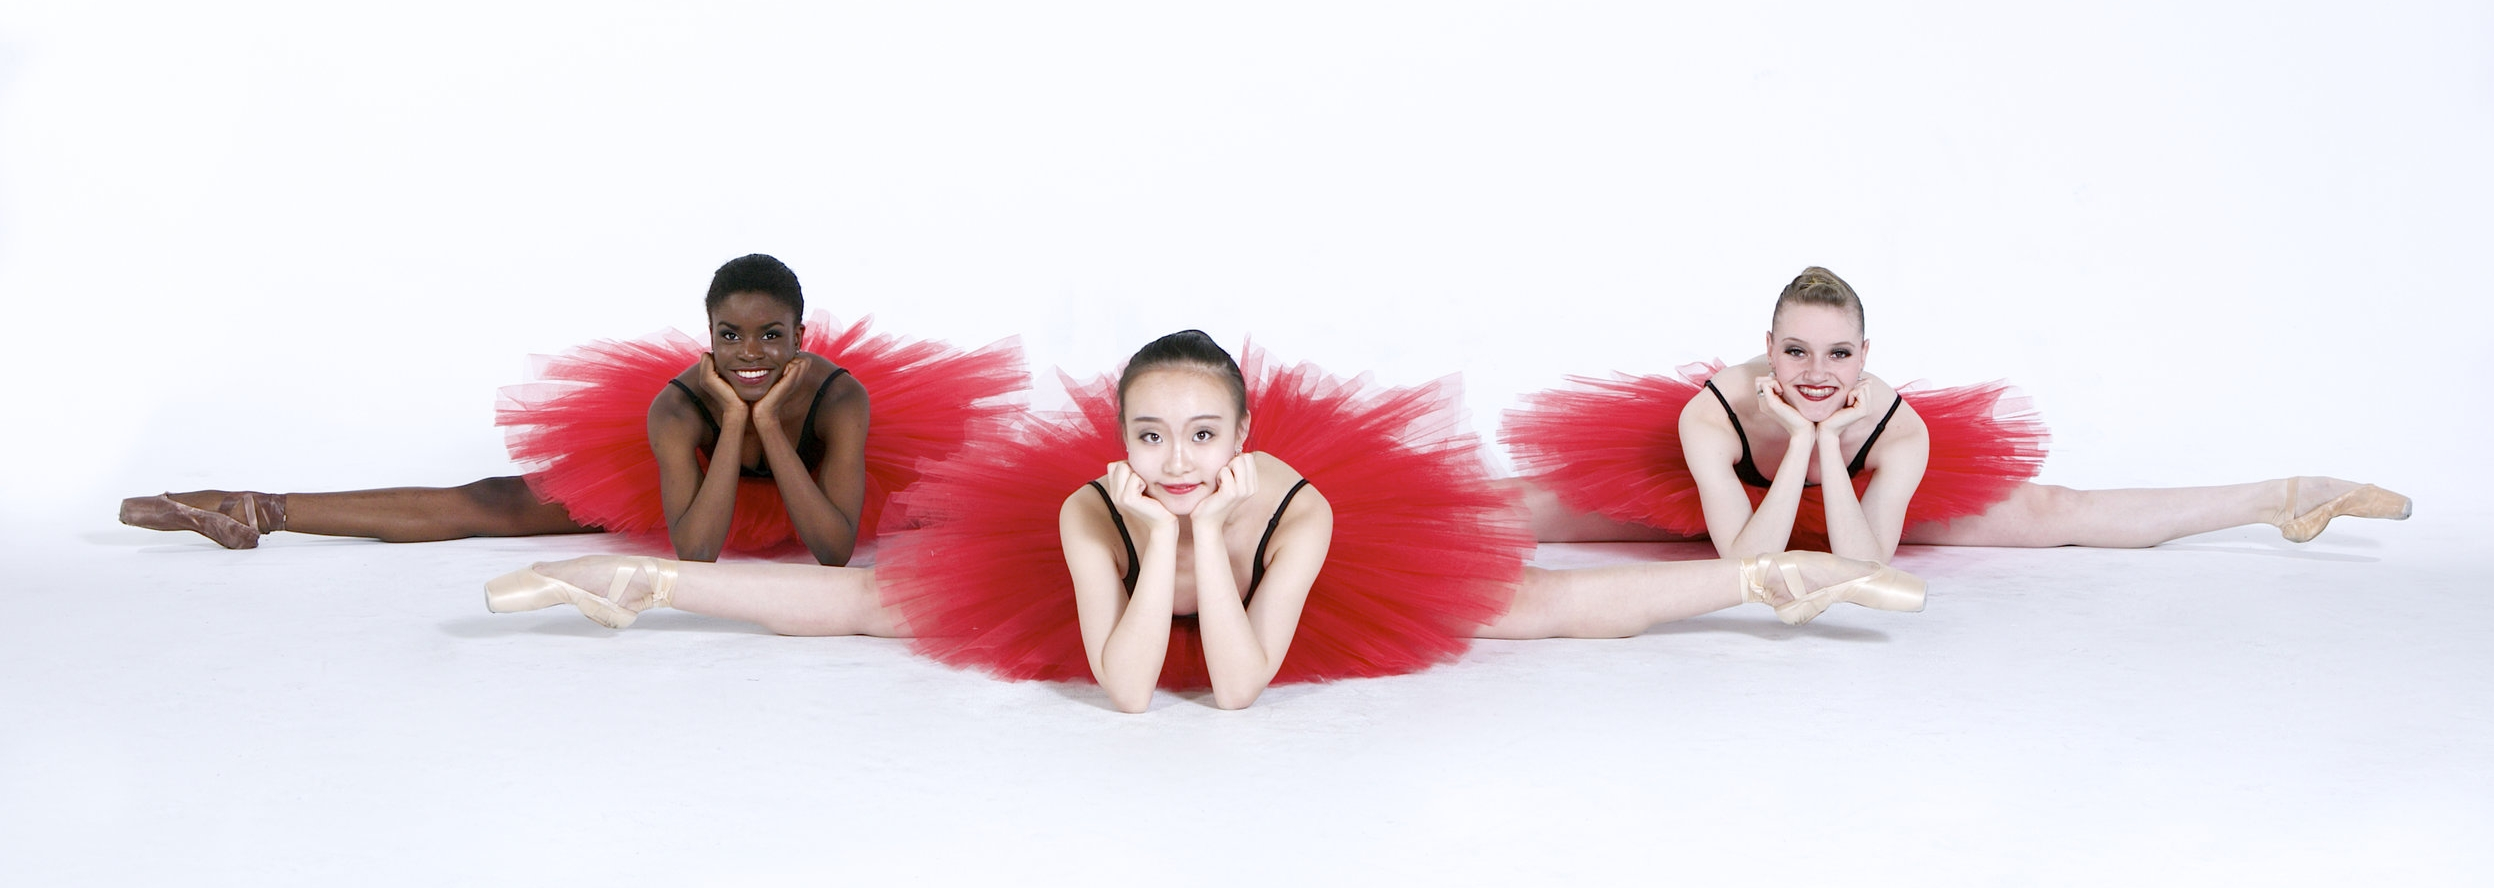 red_tutu_three copy.jpg